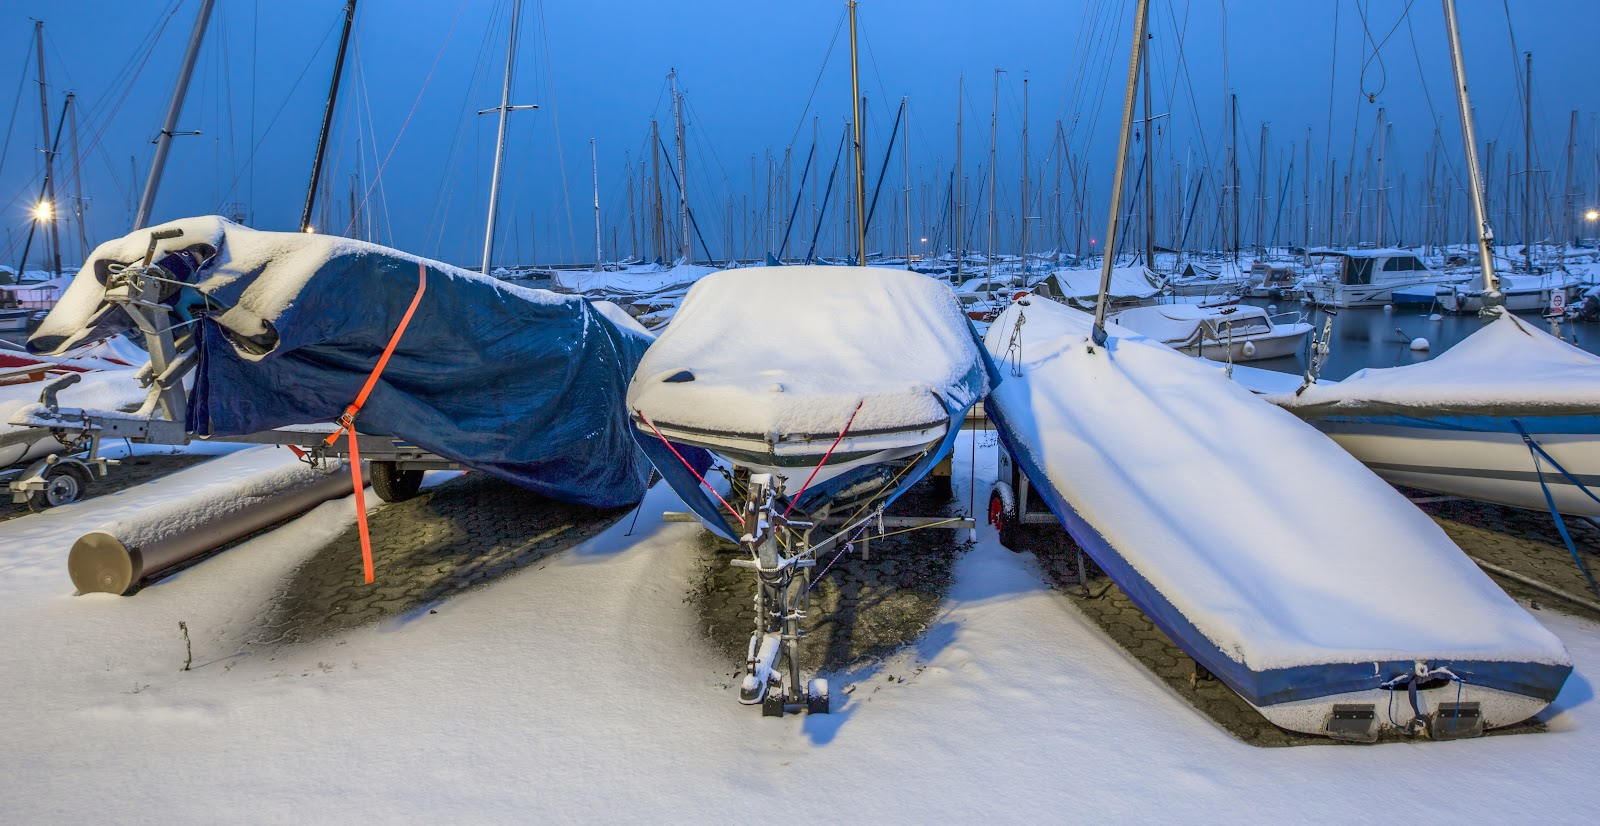 snow over vessels